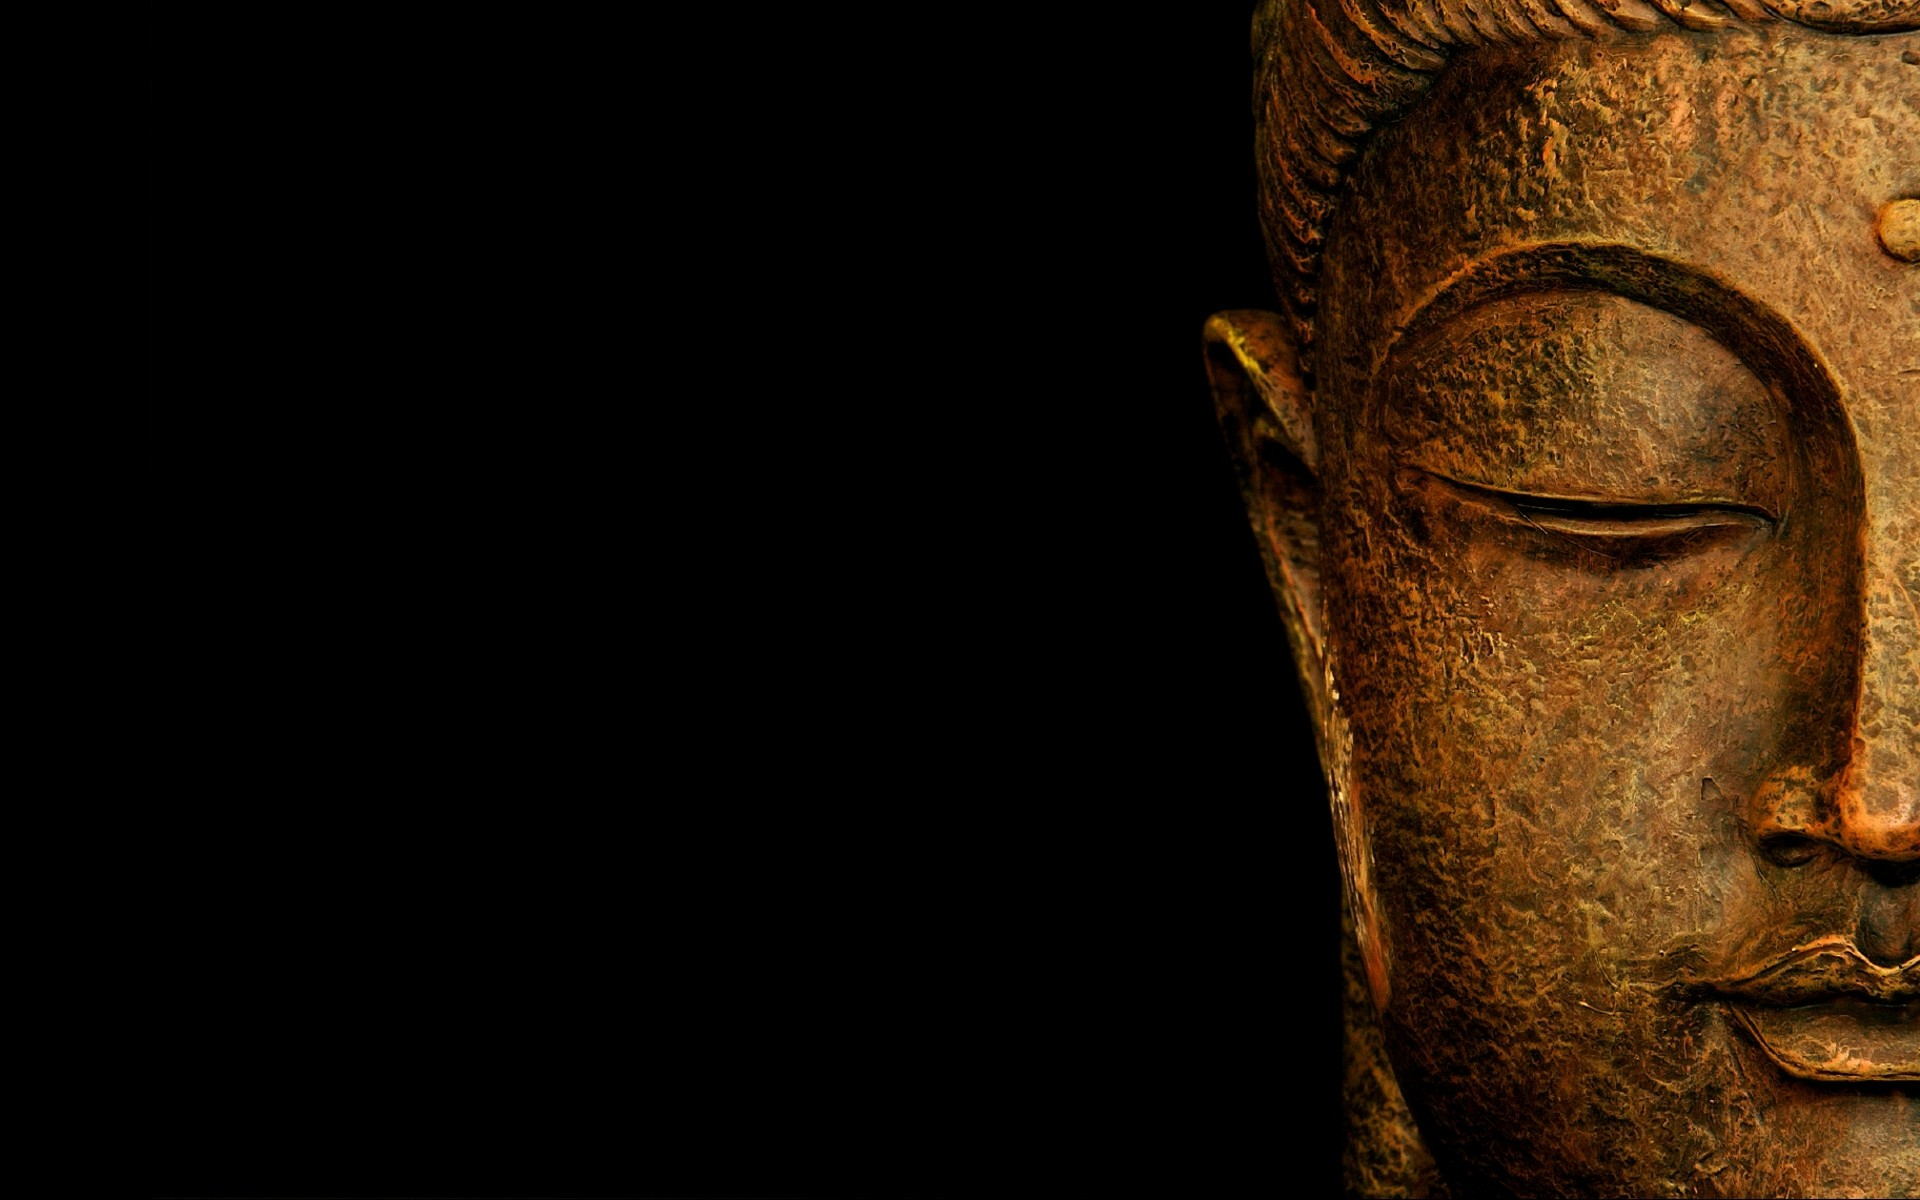 Buddhist Background (53  images) for Beautiful Buddha Wallpaper  157uhy